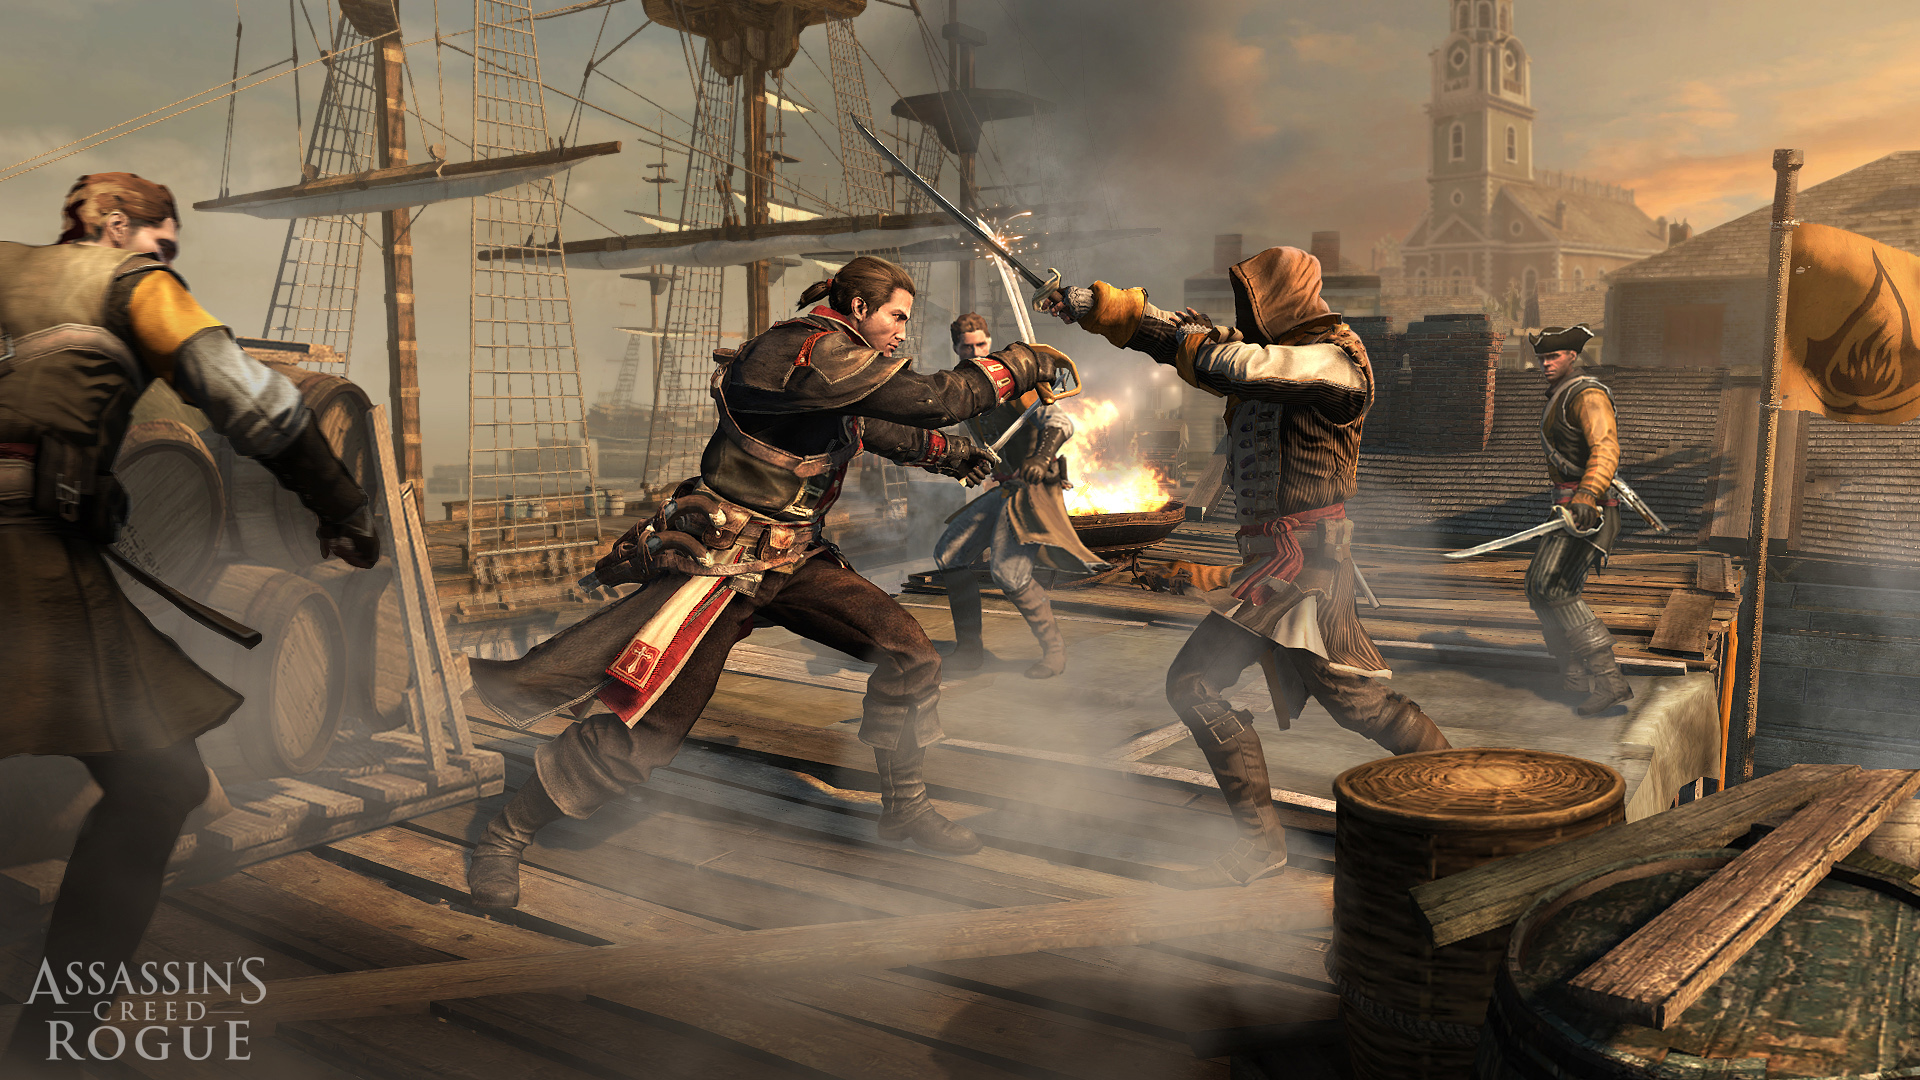 Assassin's Creed Rogue per PS3 e Xbox 360: storia e data d'uscita